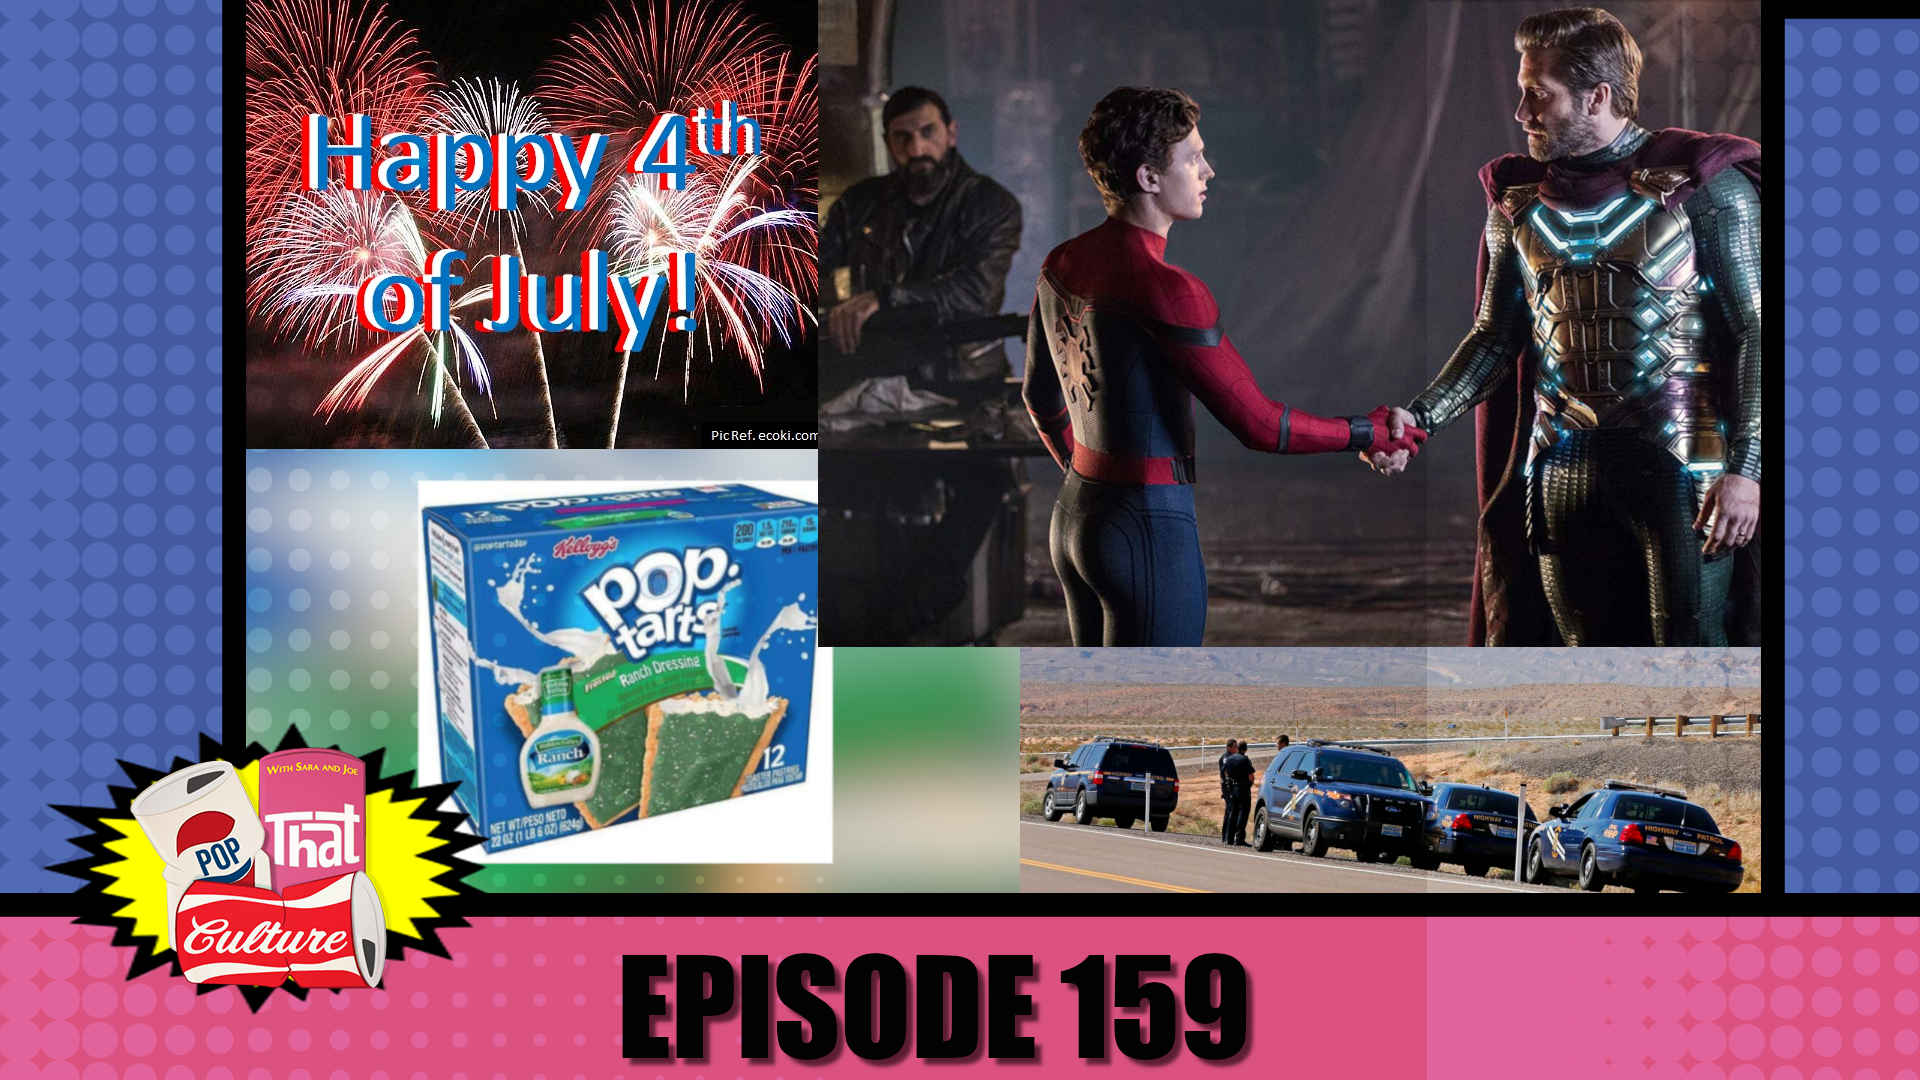 Pop That Culture - Episode 159 - Far From Home